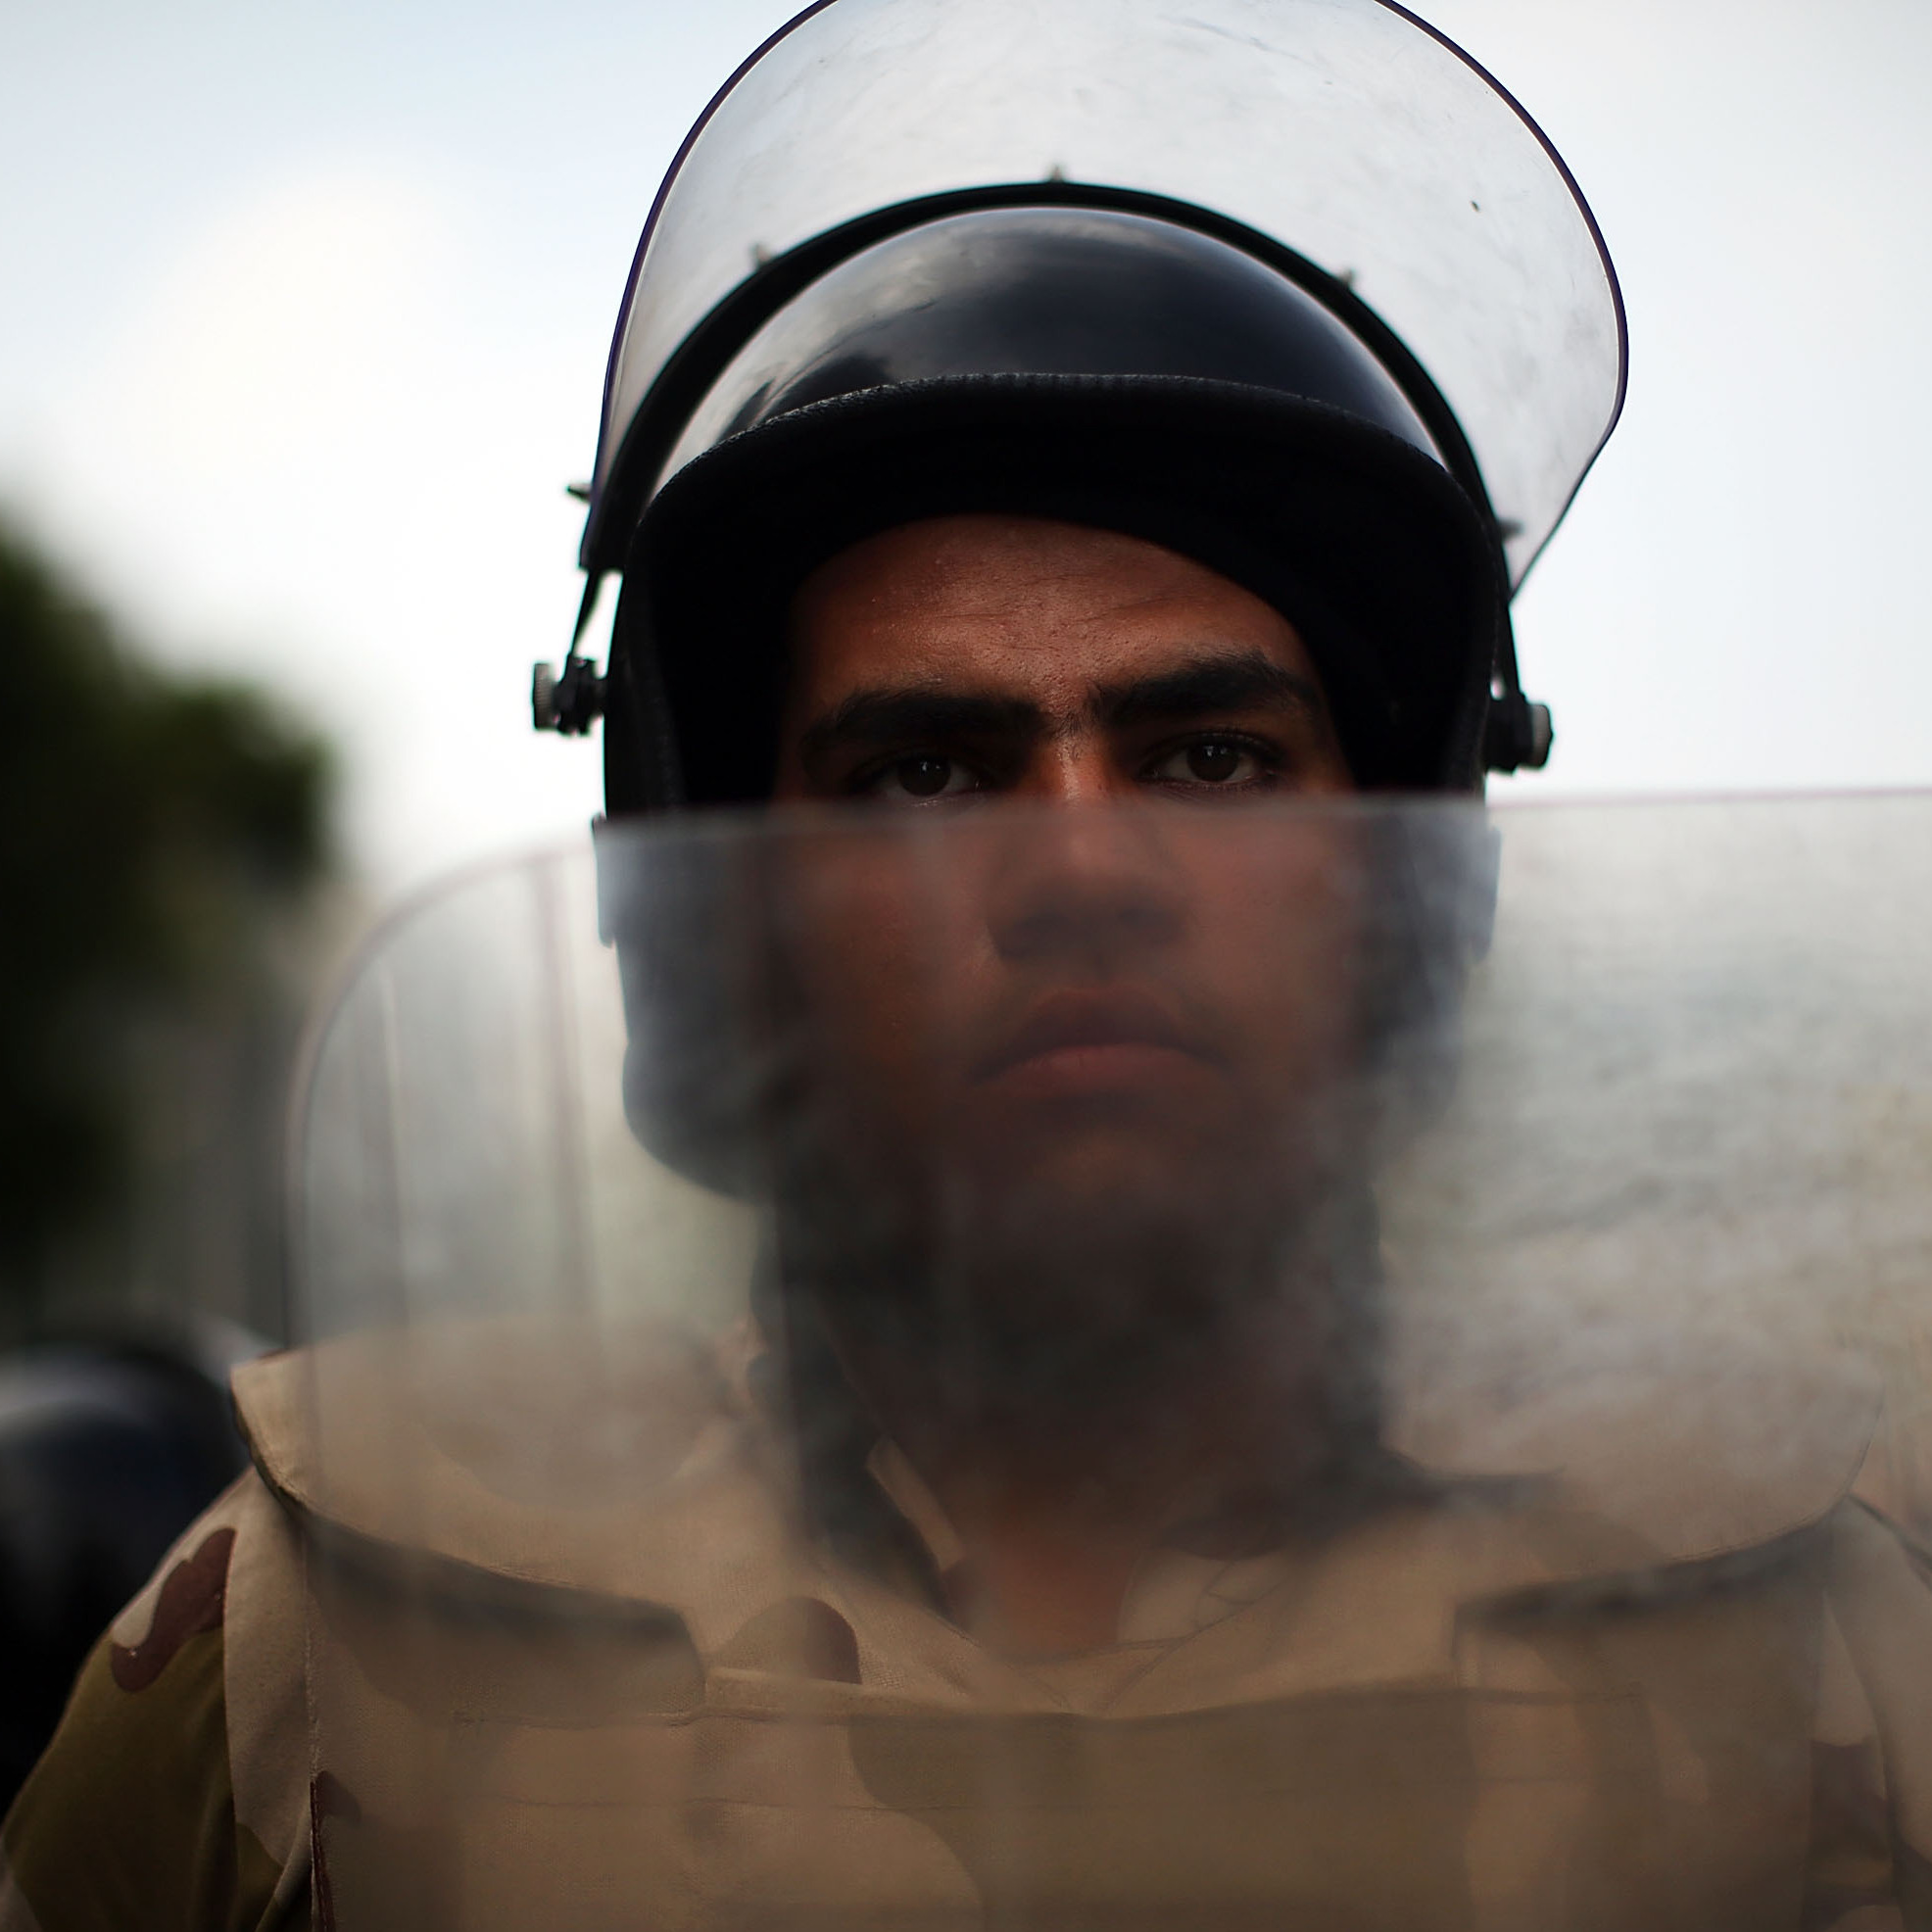 In Cairo, this soldier was among many standing guard at roadblocks Thursday as authorities moved to try to prevent violence while also seeking to arrest hundreds of Muslim Brotherhood members.